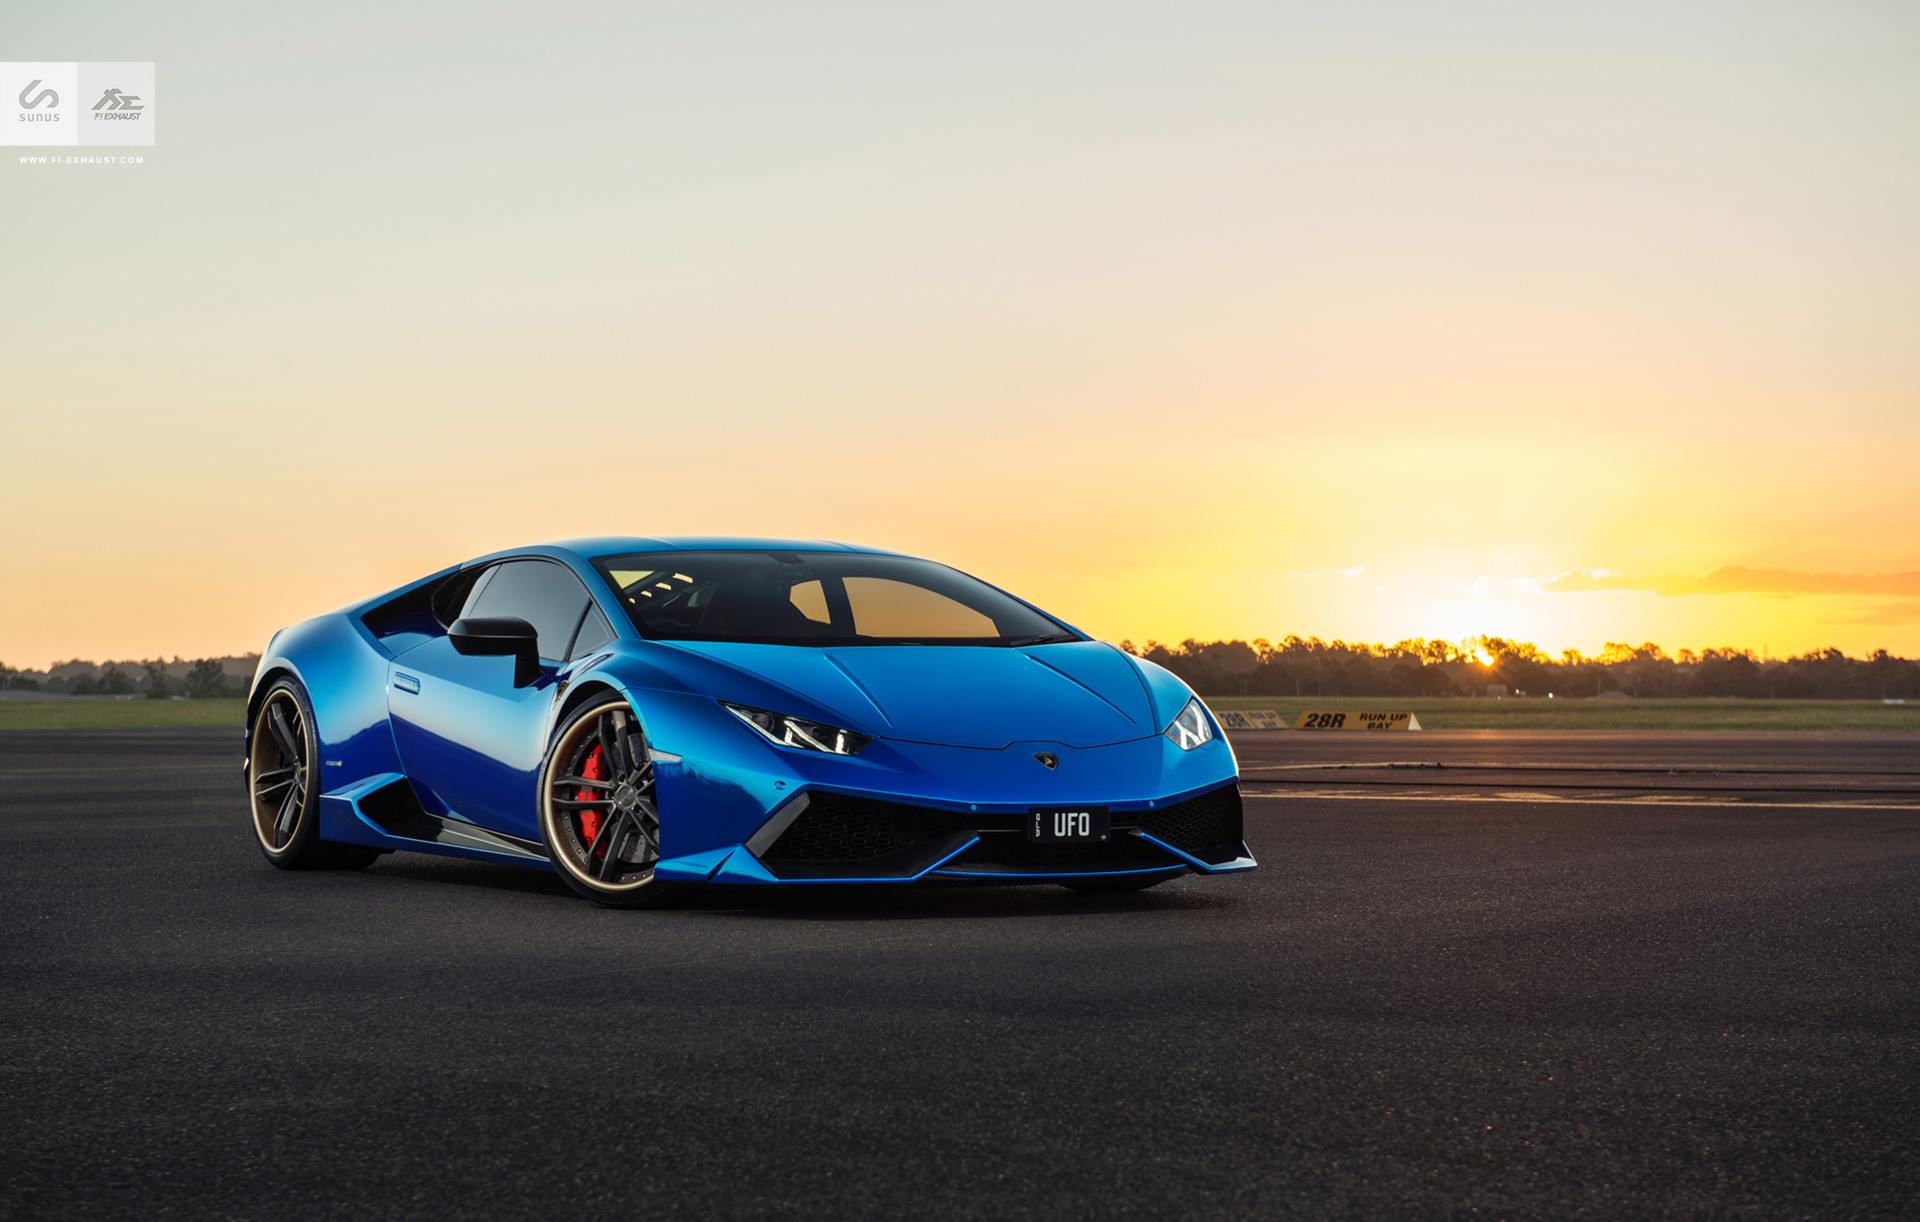 stunning blue chrome lamborghini huracan by sunus motorsport gtspirit. Black Bedroom Furniture Sets. Home Design Ideas